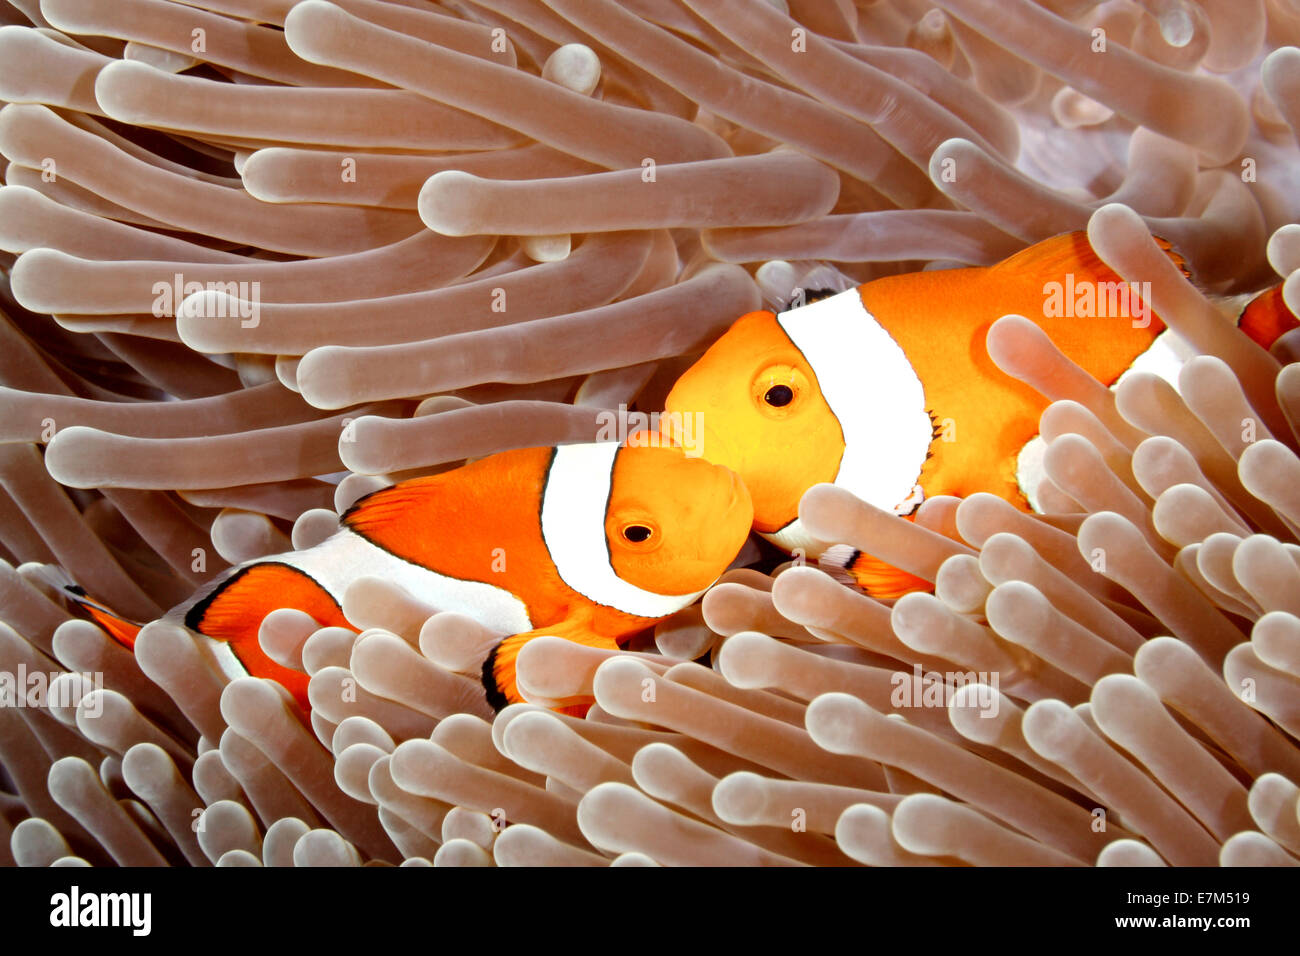 two-clown-anemonefish-amphiprion-percula-together-in-the-tentacles-E7M519.jpg